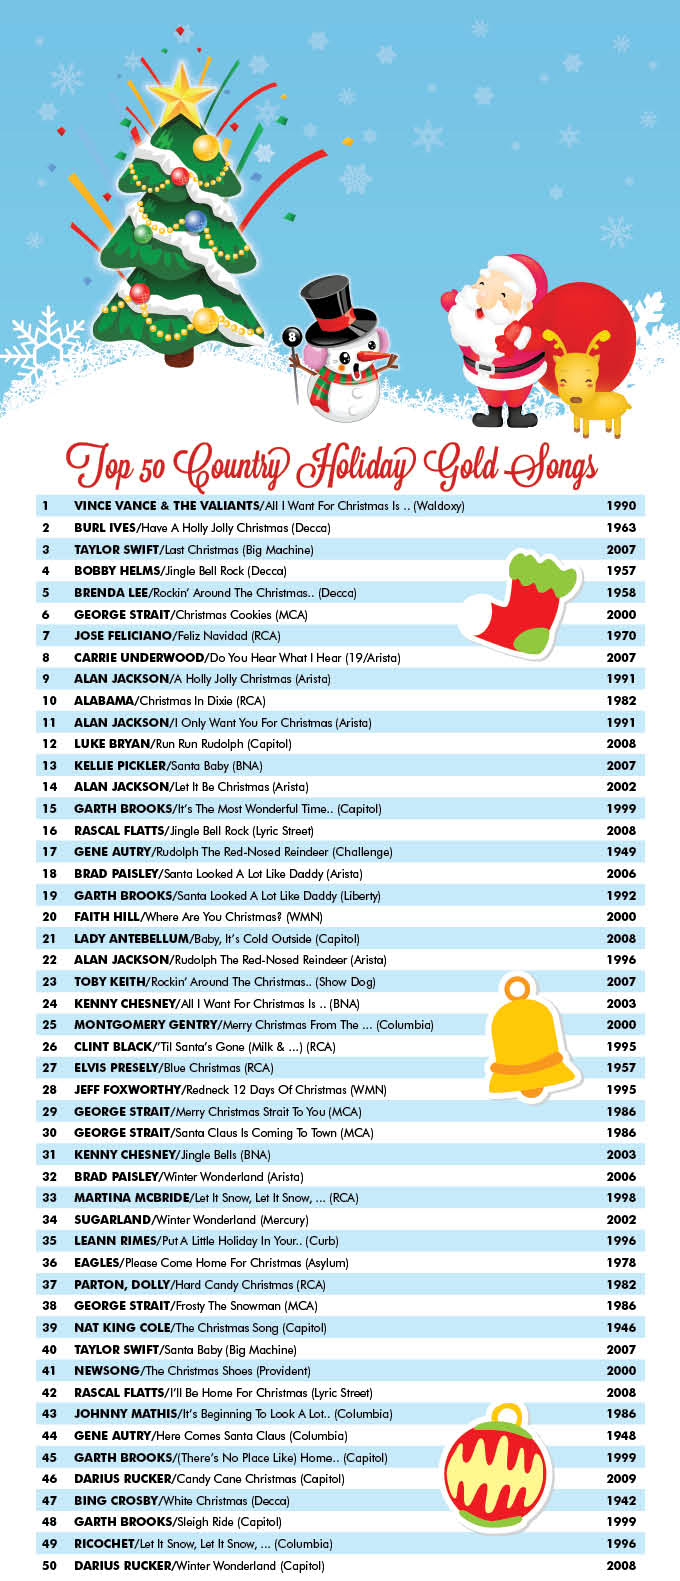 Country Aircheck Top 50 Country Holiday Gold Songs